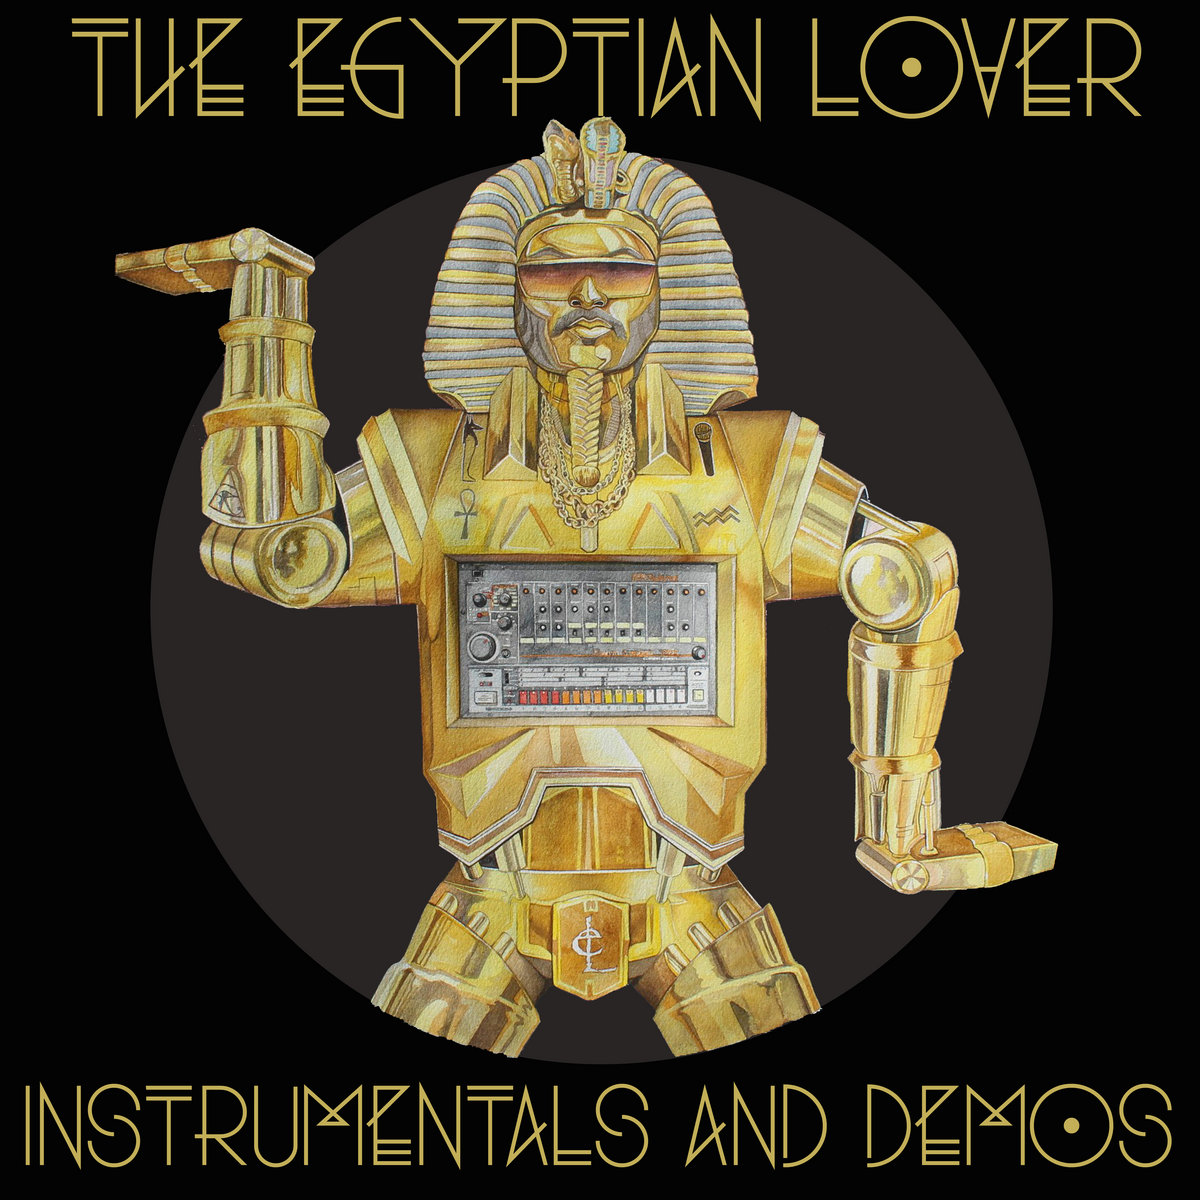 instrumentals and demos (Limited Edition) | The Egyptian Lover